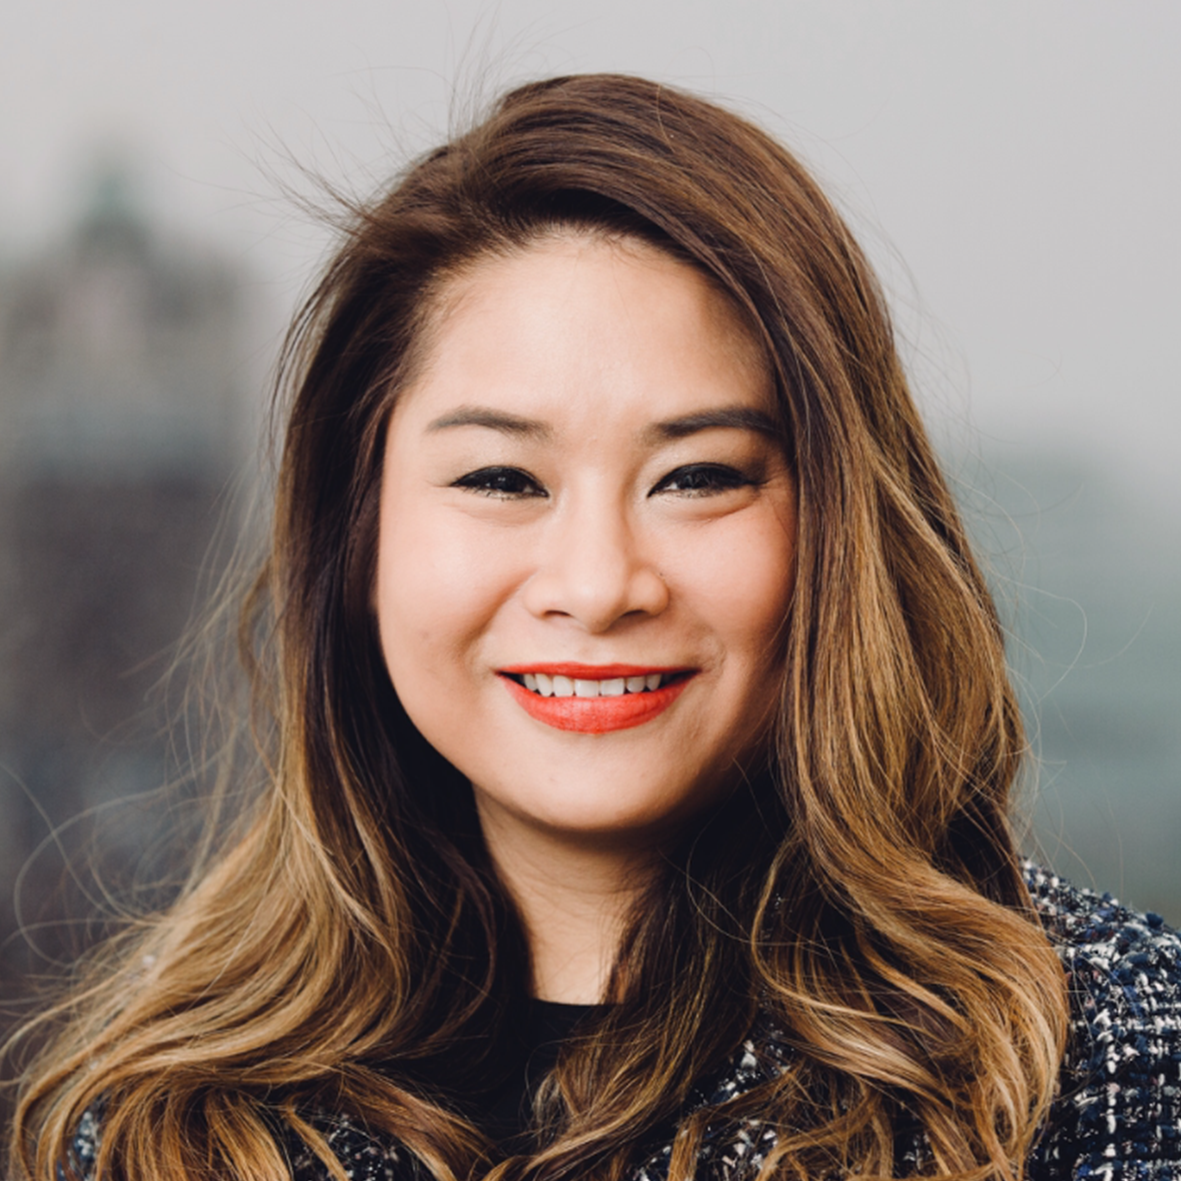 Hydi Yip         Private Banker, SG Kleinwort Hambros Bank Ltd   Hydi Yip is a Private Banker at Kleinwort Hambros on the UK domestic team. Hydi has over 10 years experience within the wealth management industry. She began her career with UBS and joined Kleinwort Hambros in 2014. She manages a diverse client base and has particular expertise in looking after entrepreneurs and families.  Hydi is a member of the Chartered Institute for Securities & Investment and she obtained a distinction in the Level 6 Private Client Investment Advice and Management qualification. She is fluent in Chinese.